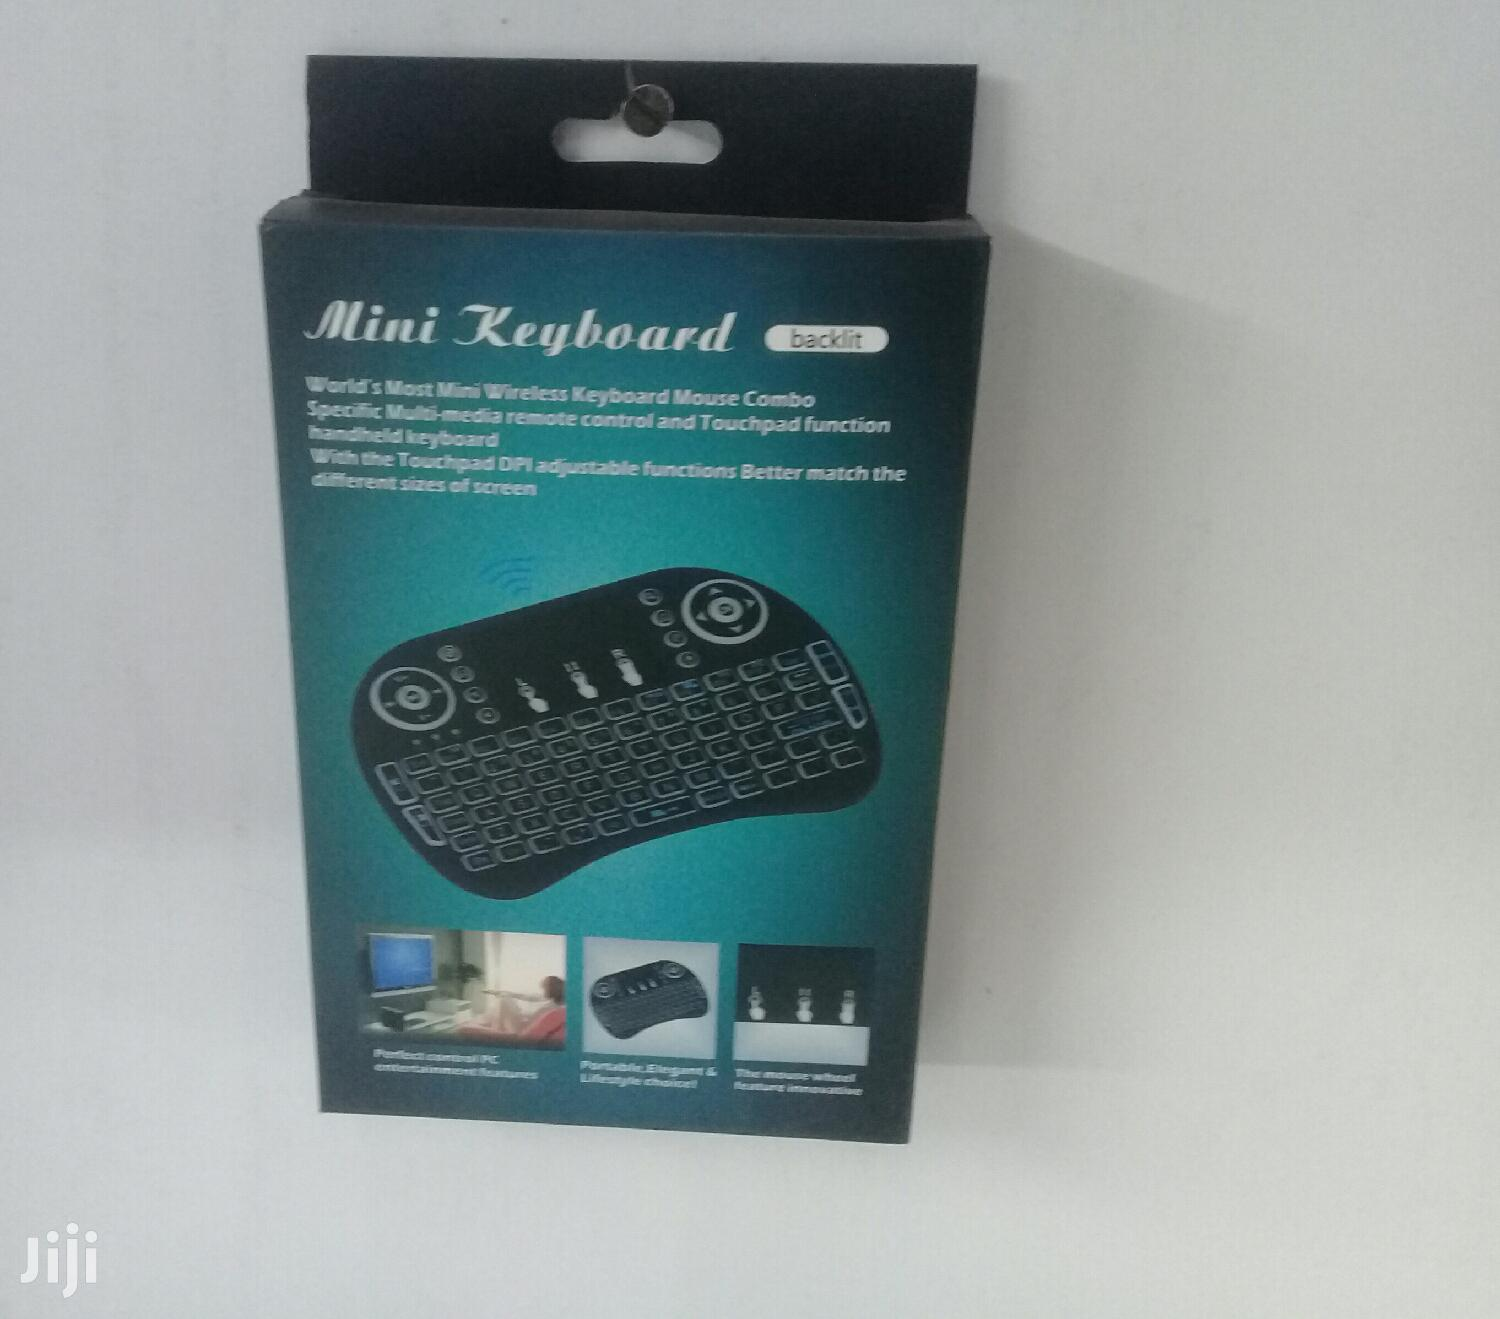 Wireless Mini Keyboard | Accessories & Supplies for Electronics for sale in Nairobi Central, Nairobi, Kenya